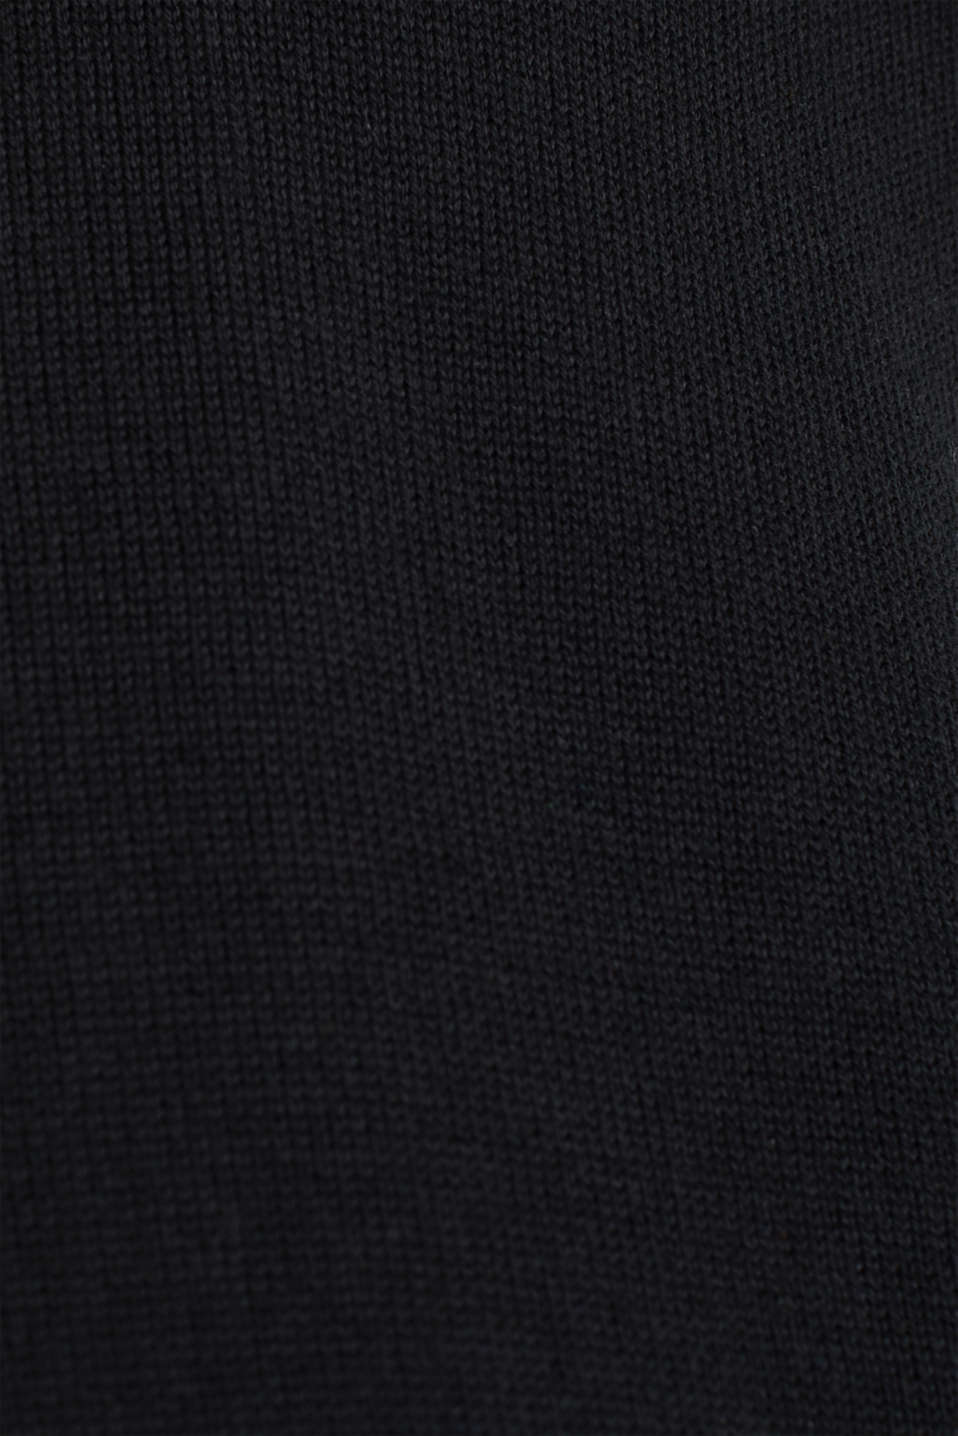 Cardigan with open-work pattern details, BLACK, detail image number 4